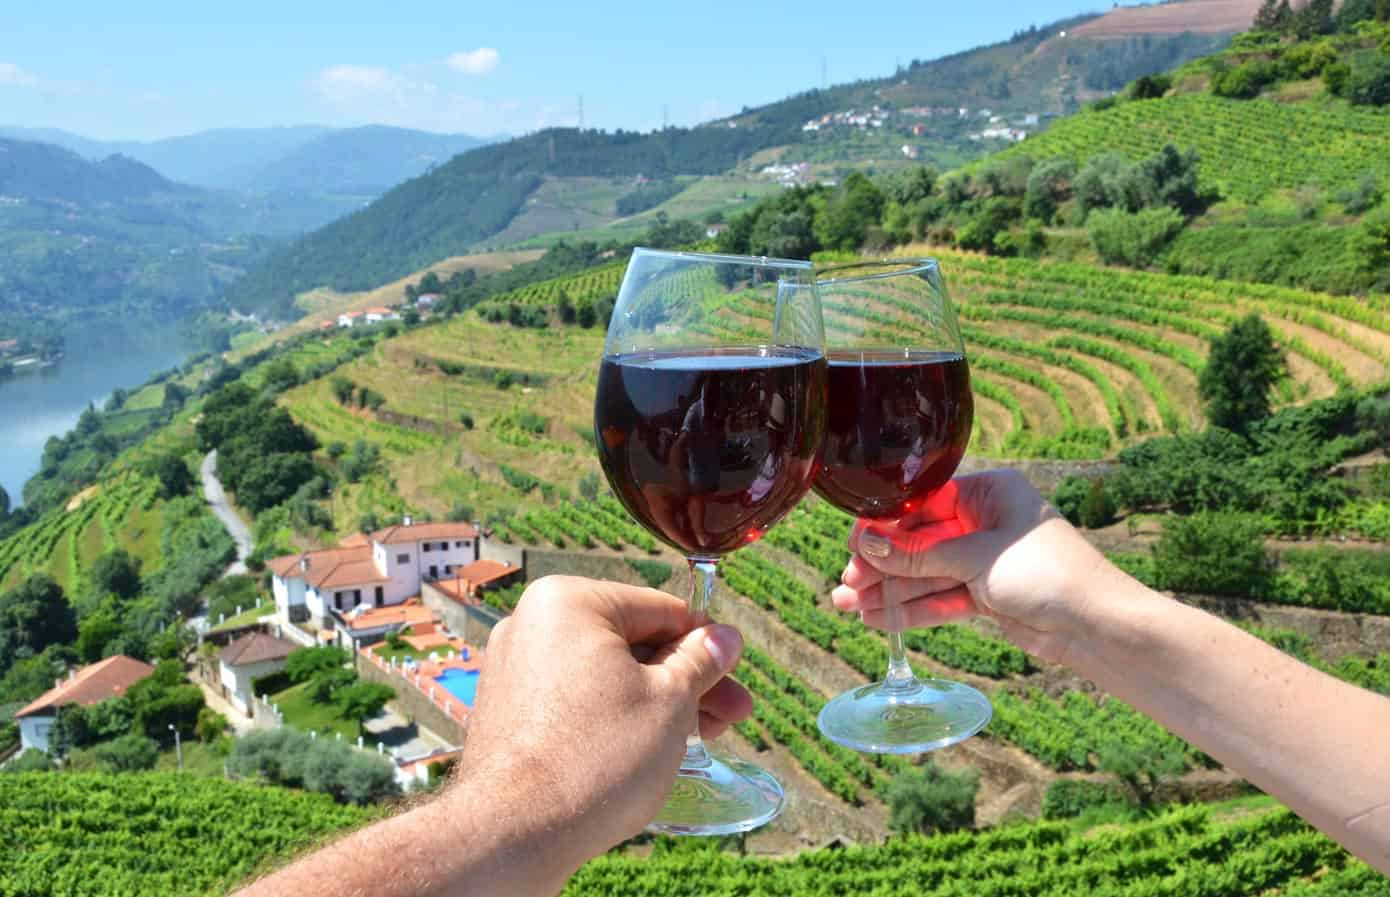 Sharing wine at the vineyards in Douro River Valley, Portugal.